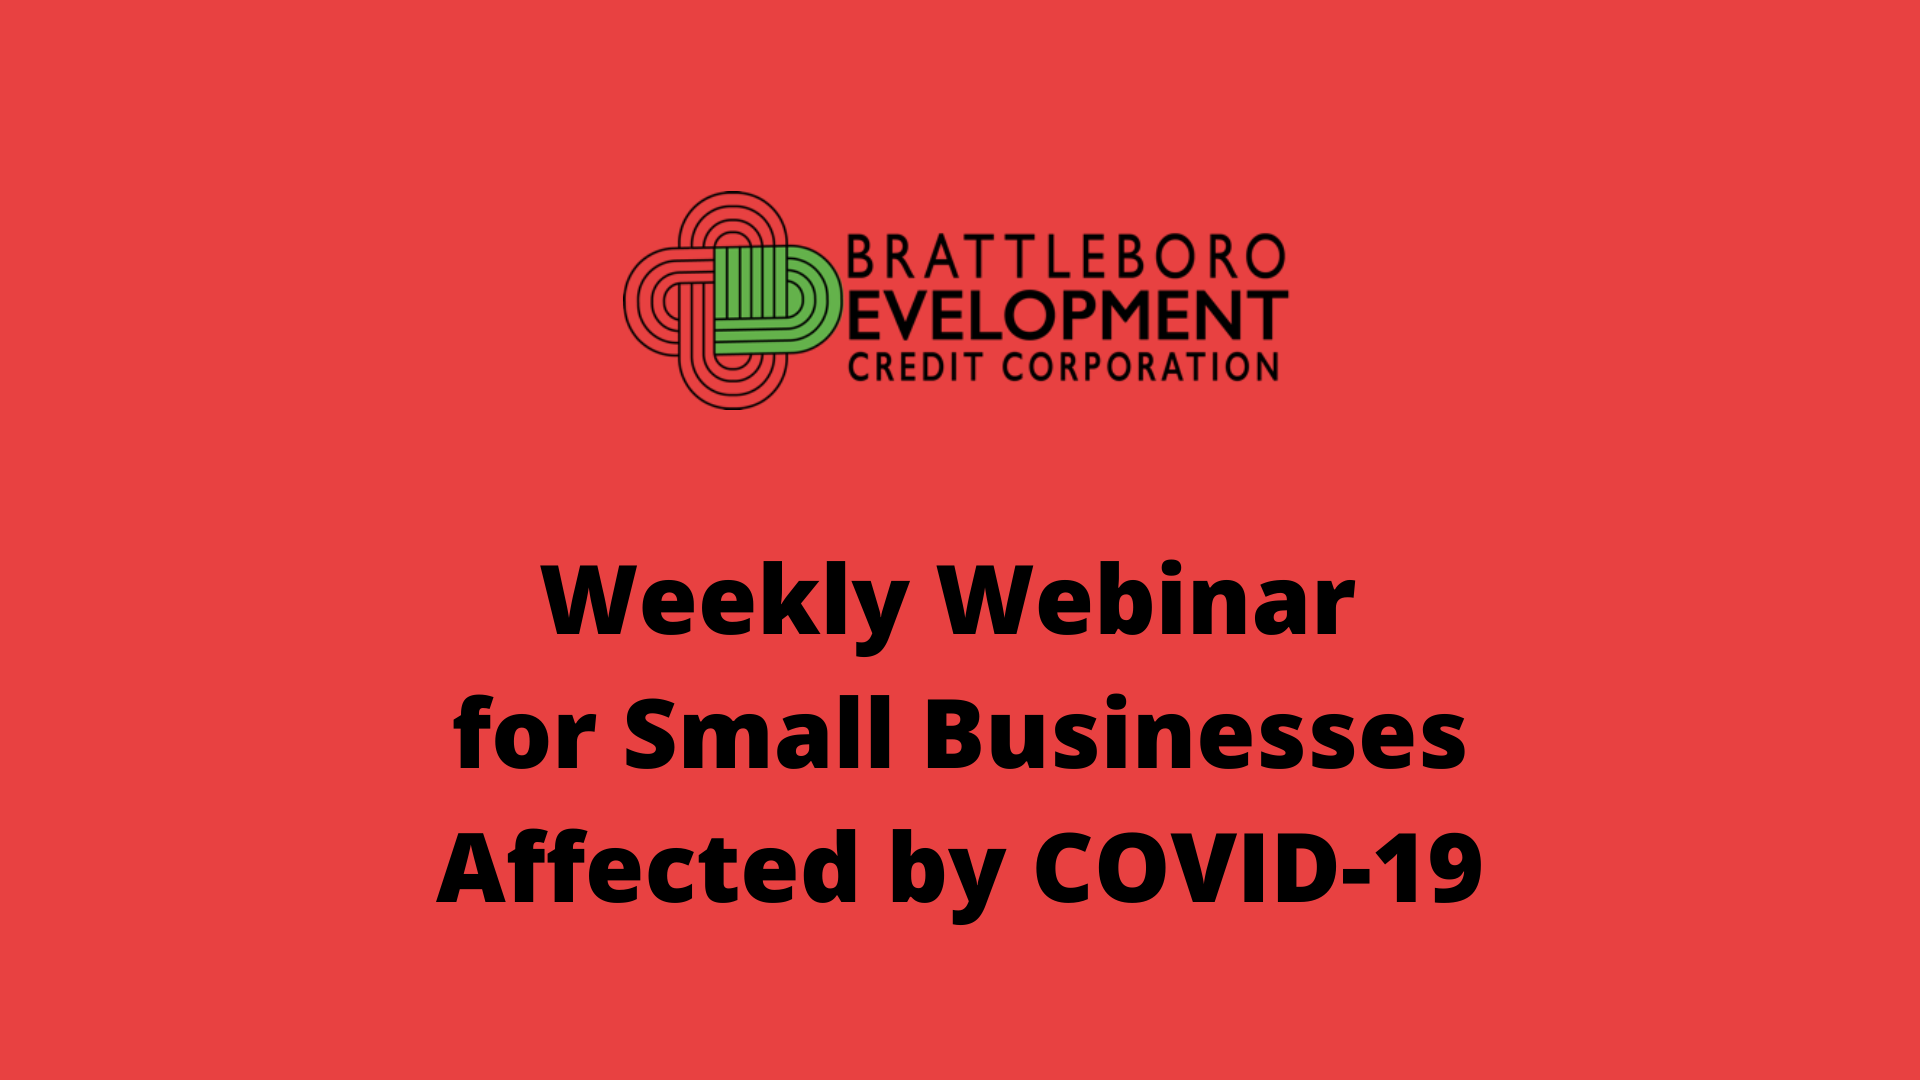 Weekly Webinar for Businesses Affected by COVID-19